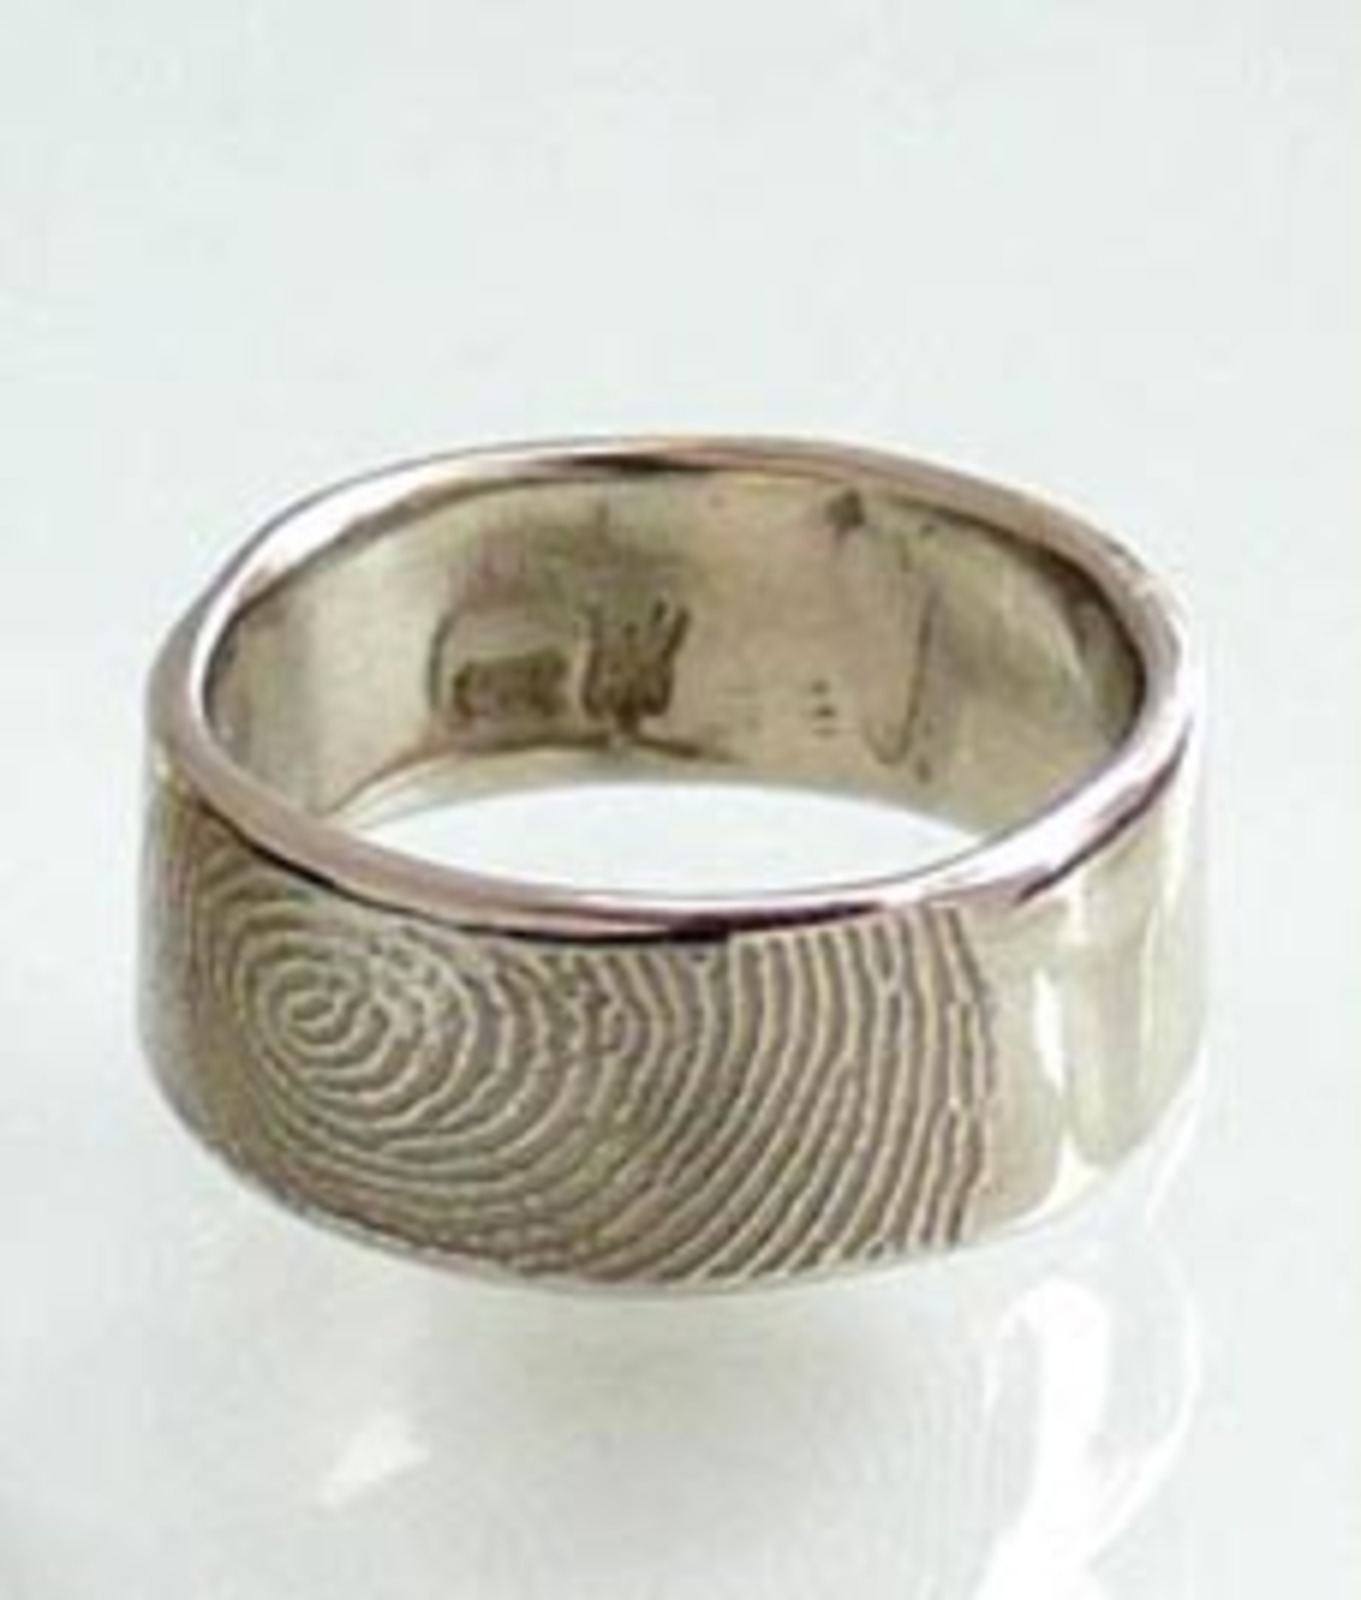 each ring s etsy and other via rings finger titanium wear fingerprint we print wedding could pin